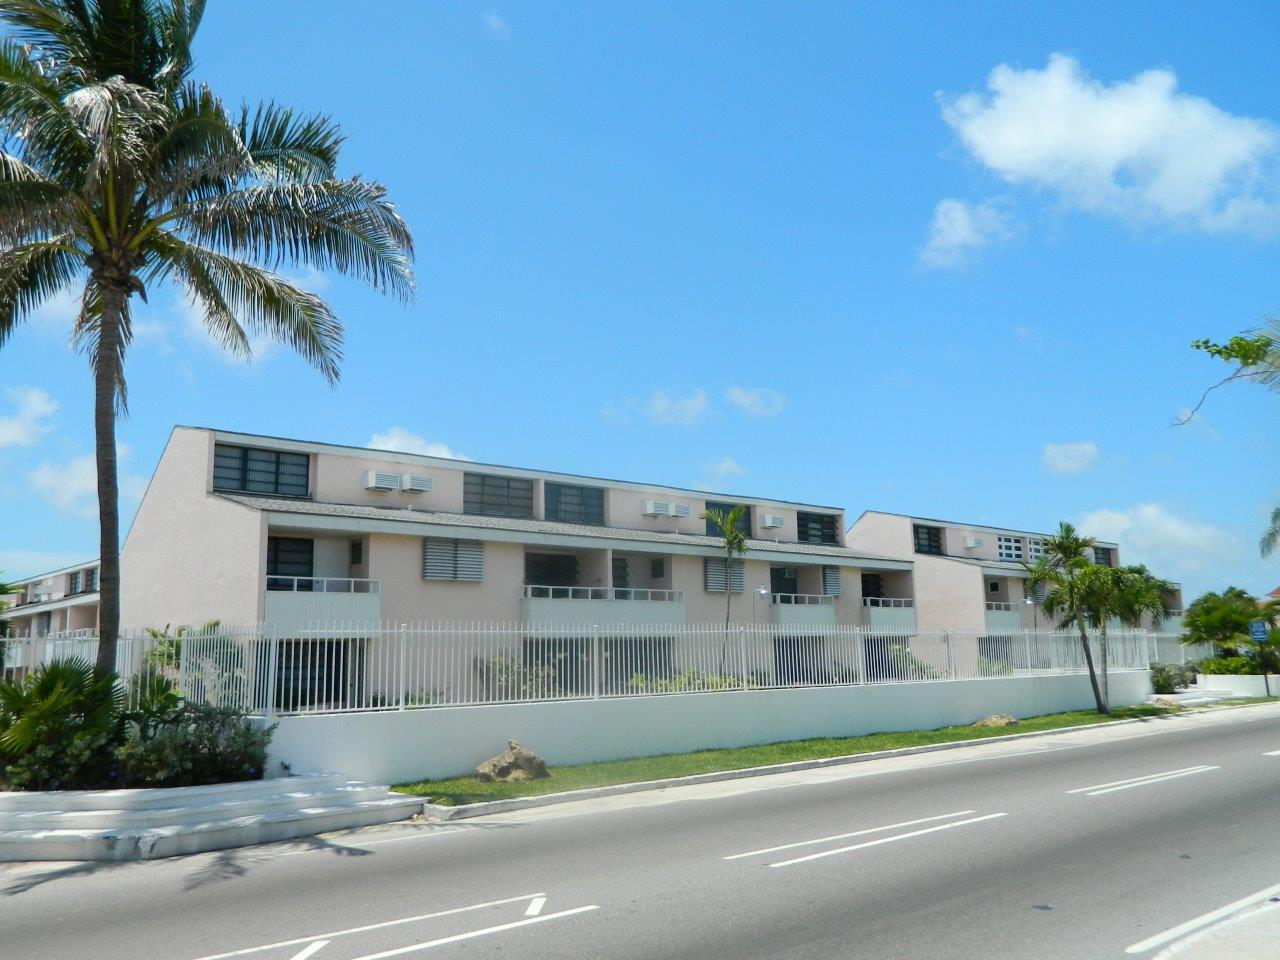 Co-op / Condo for Sale at Ocean View Townhouse at Silver Cay West Bay Street, Nassau And Paradise Island, Bahamas